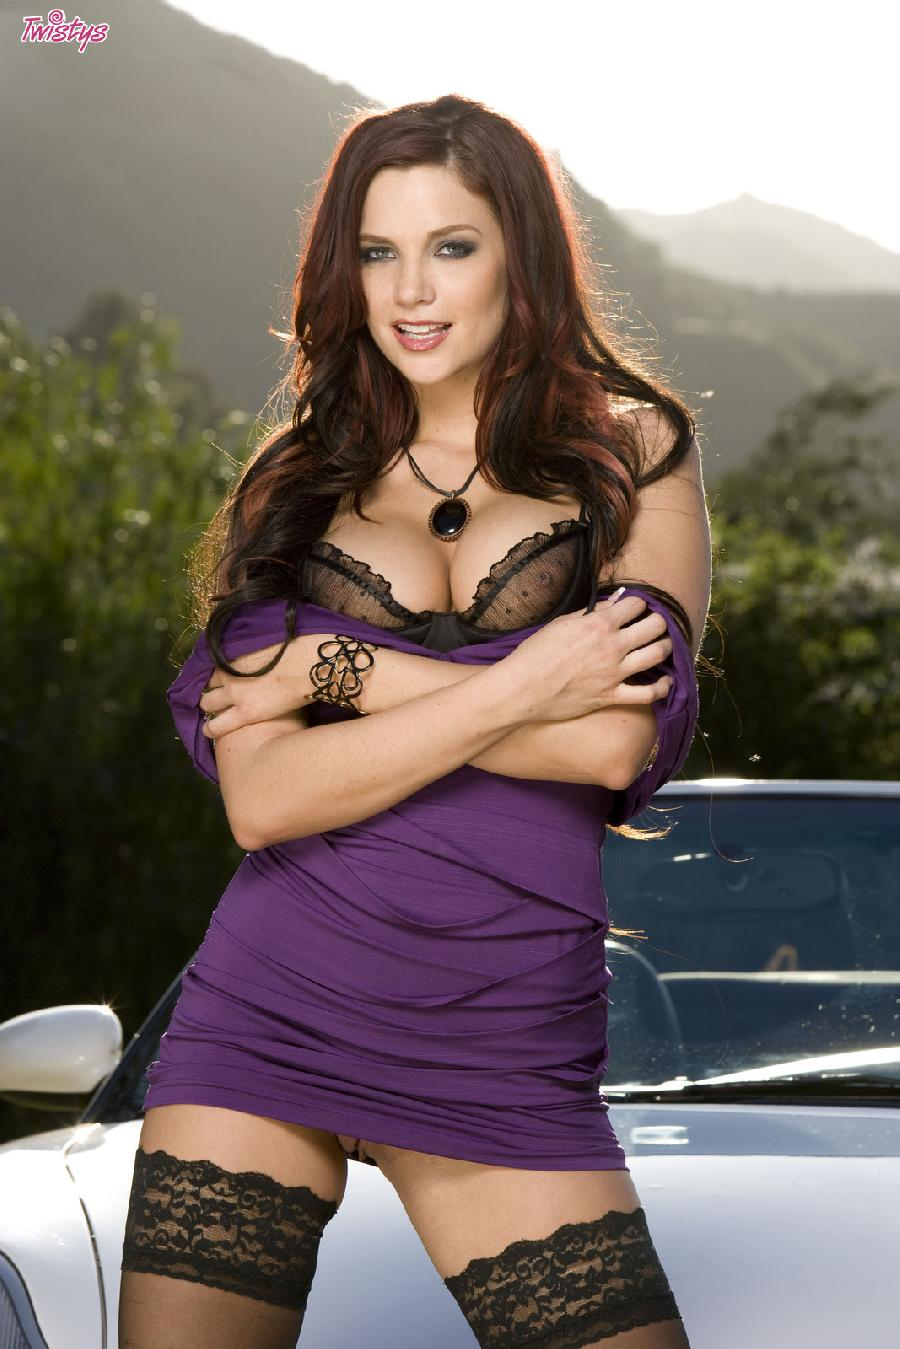 Jayden Cole lace top stockings - 2